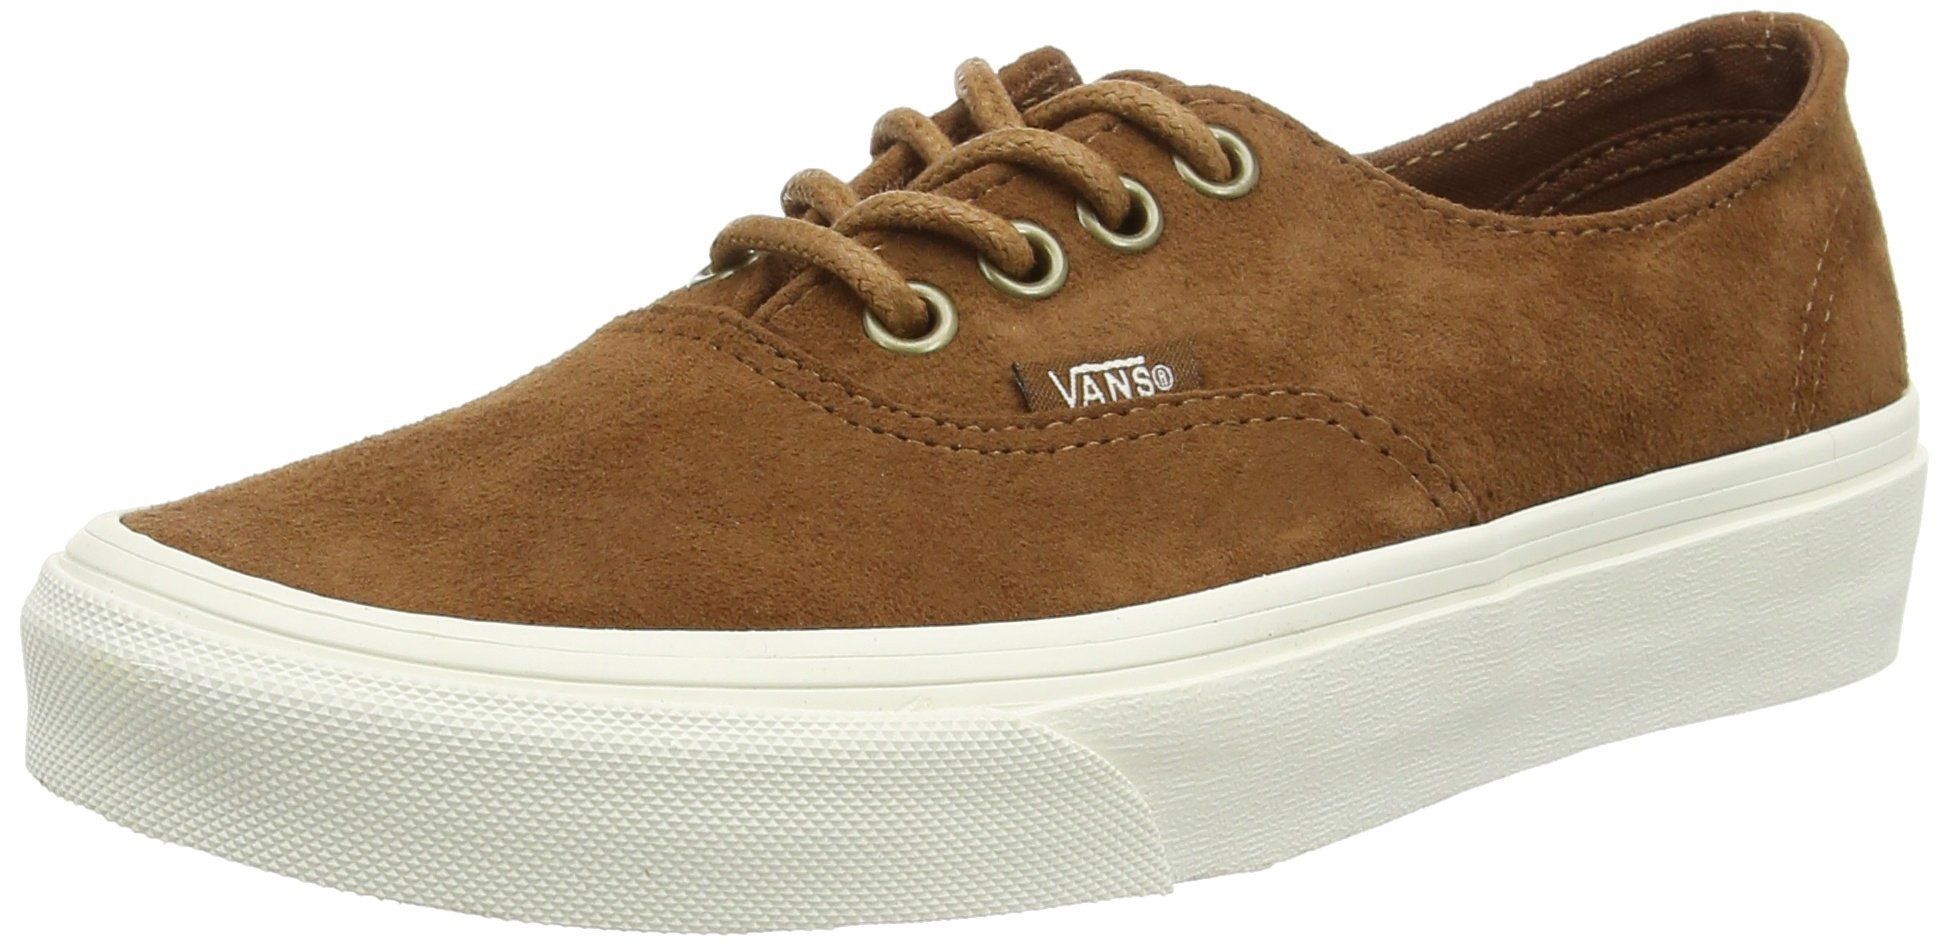 Galleon - Vans Authentic Decon (Scotchgaurd) Monk s Robe Women s Size 5 bc61257dbc5